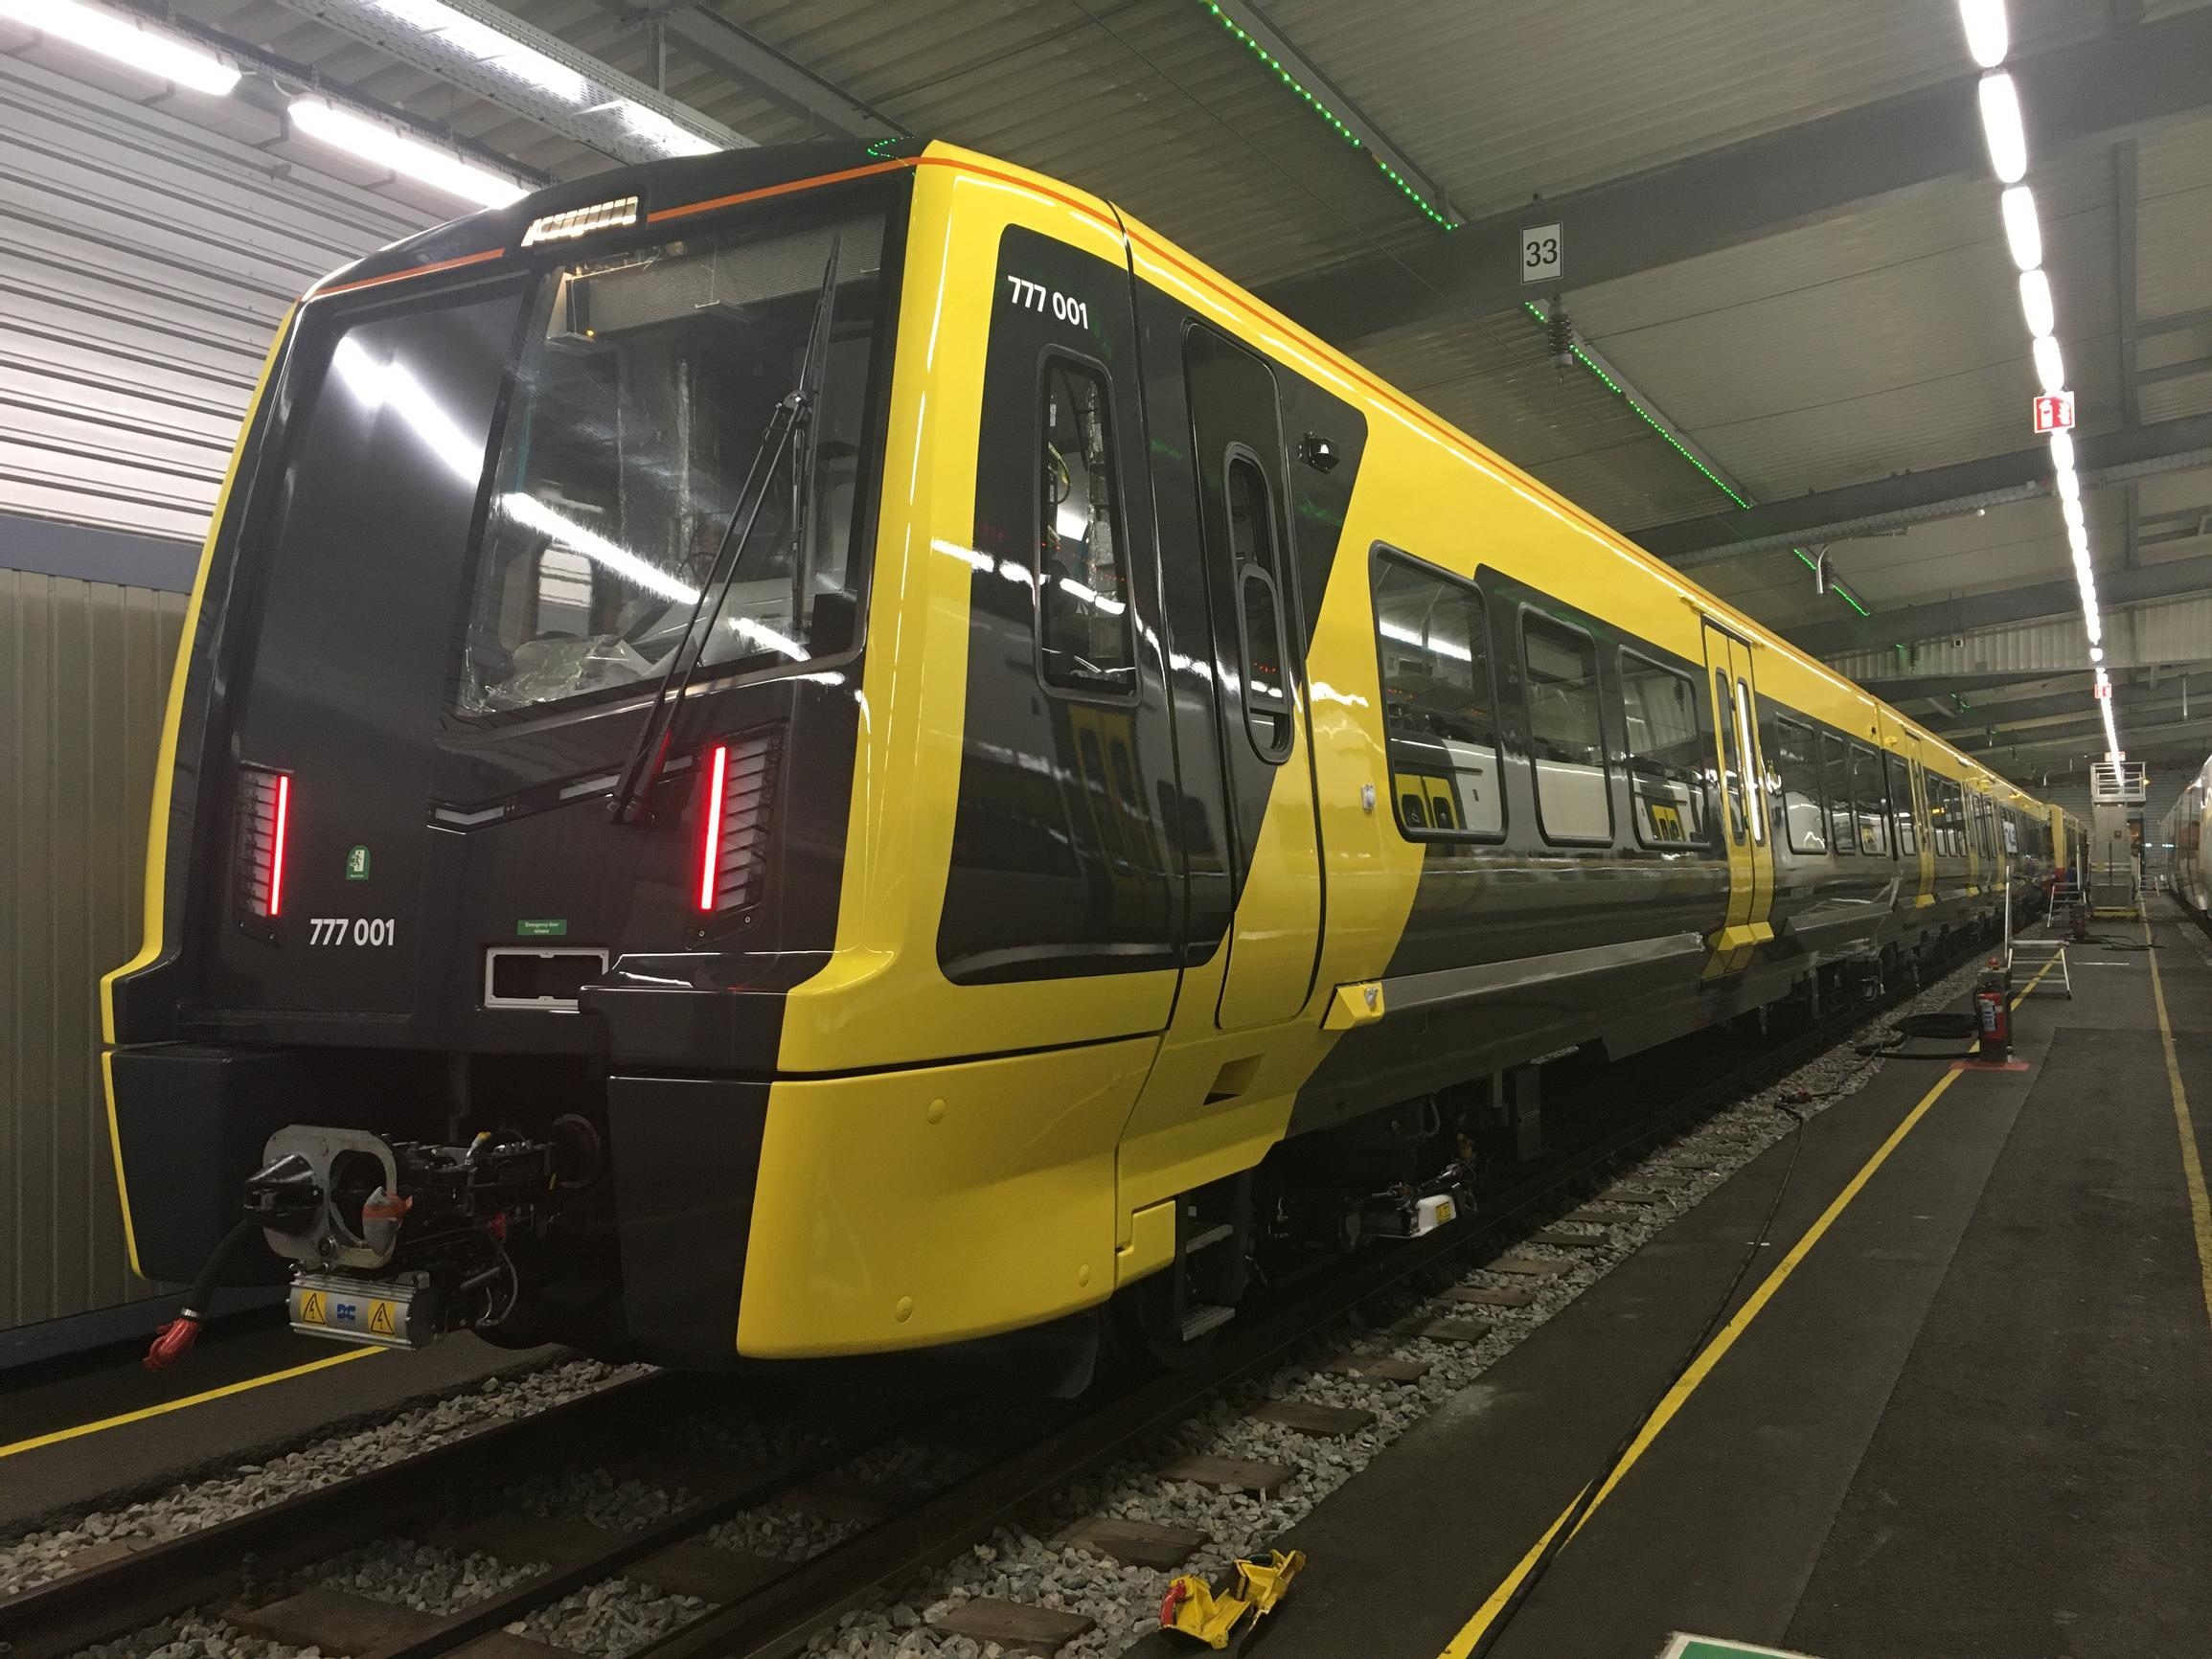 A new fleet of trains is being delivered for Merseyrail